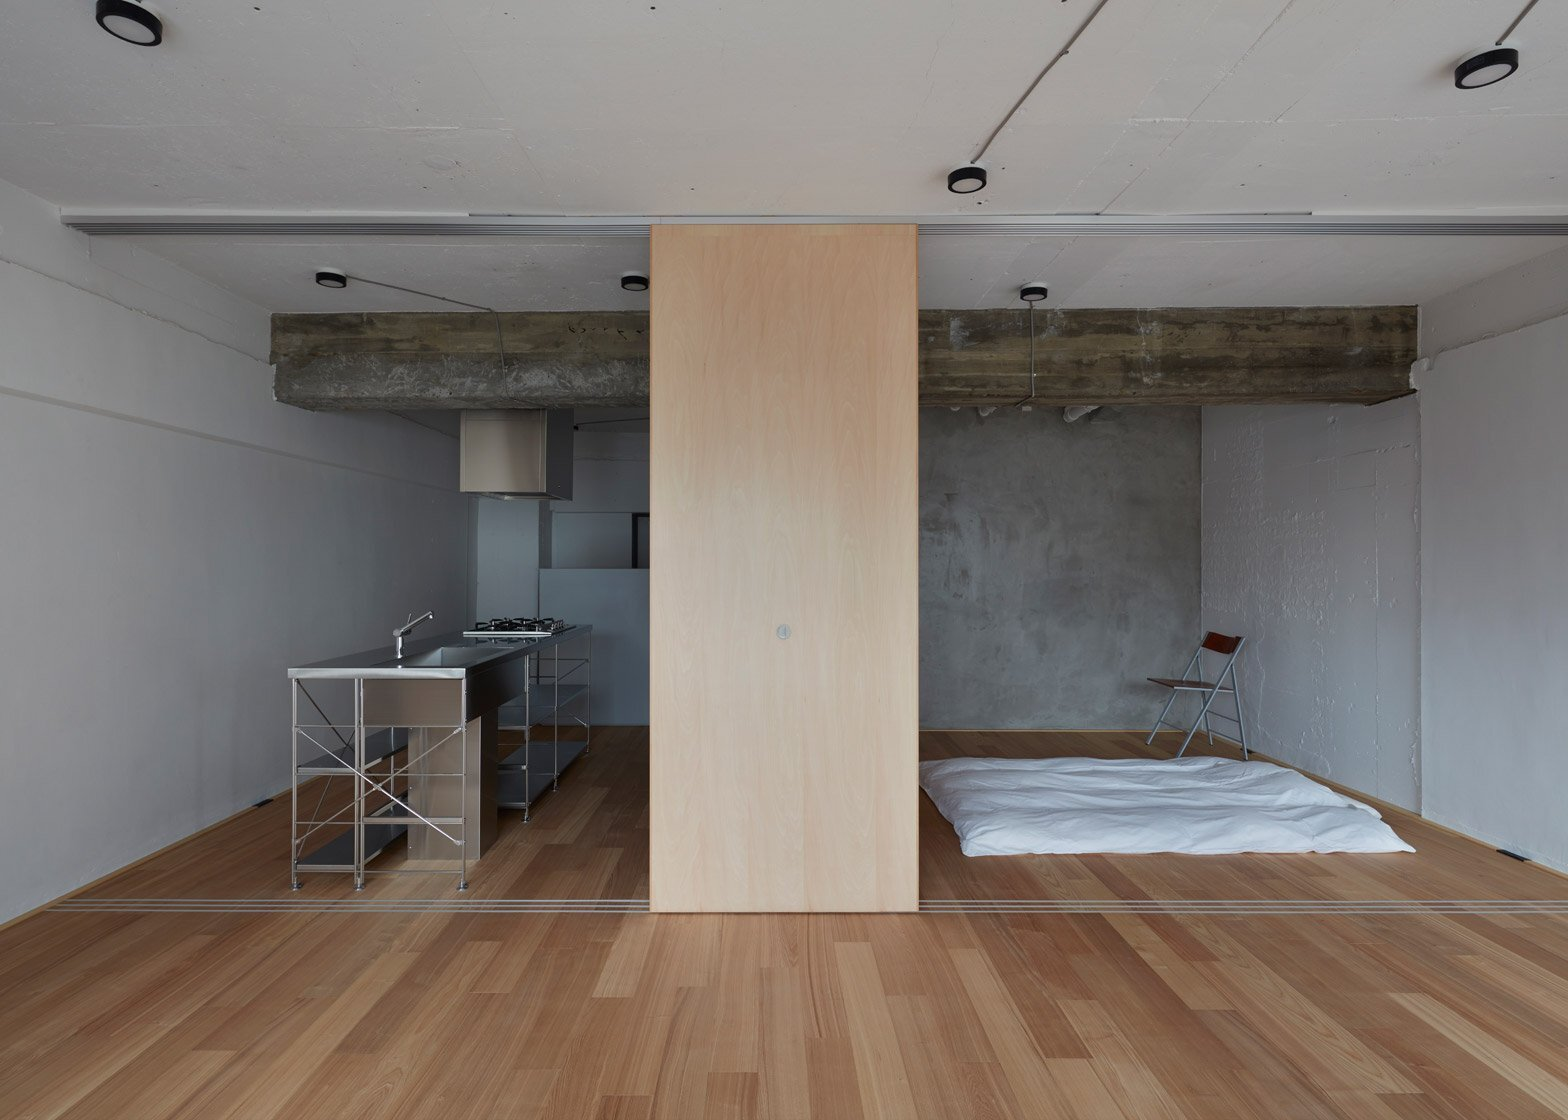 Small Apartment - FrontOfficeStudio - Tokyo - Kitchen and Bedroom - Humble Homes